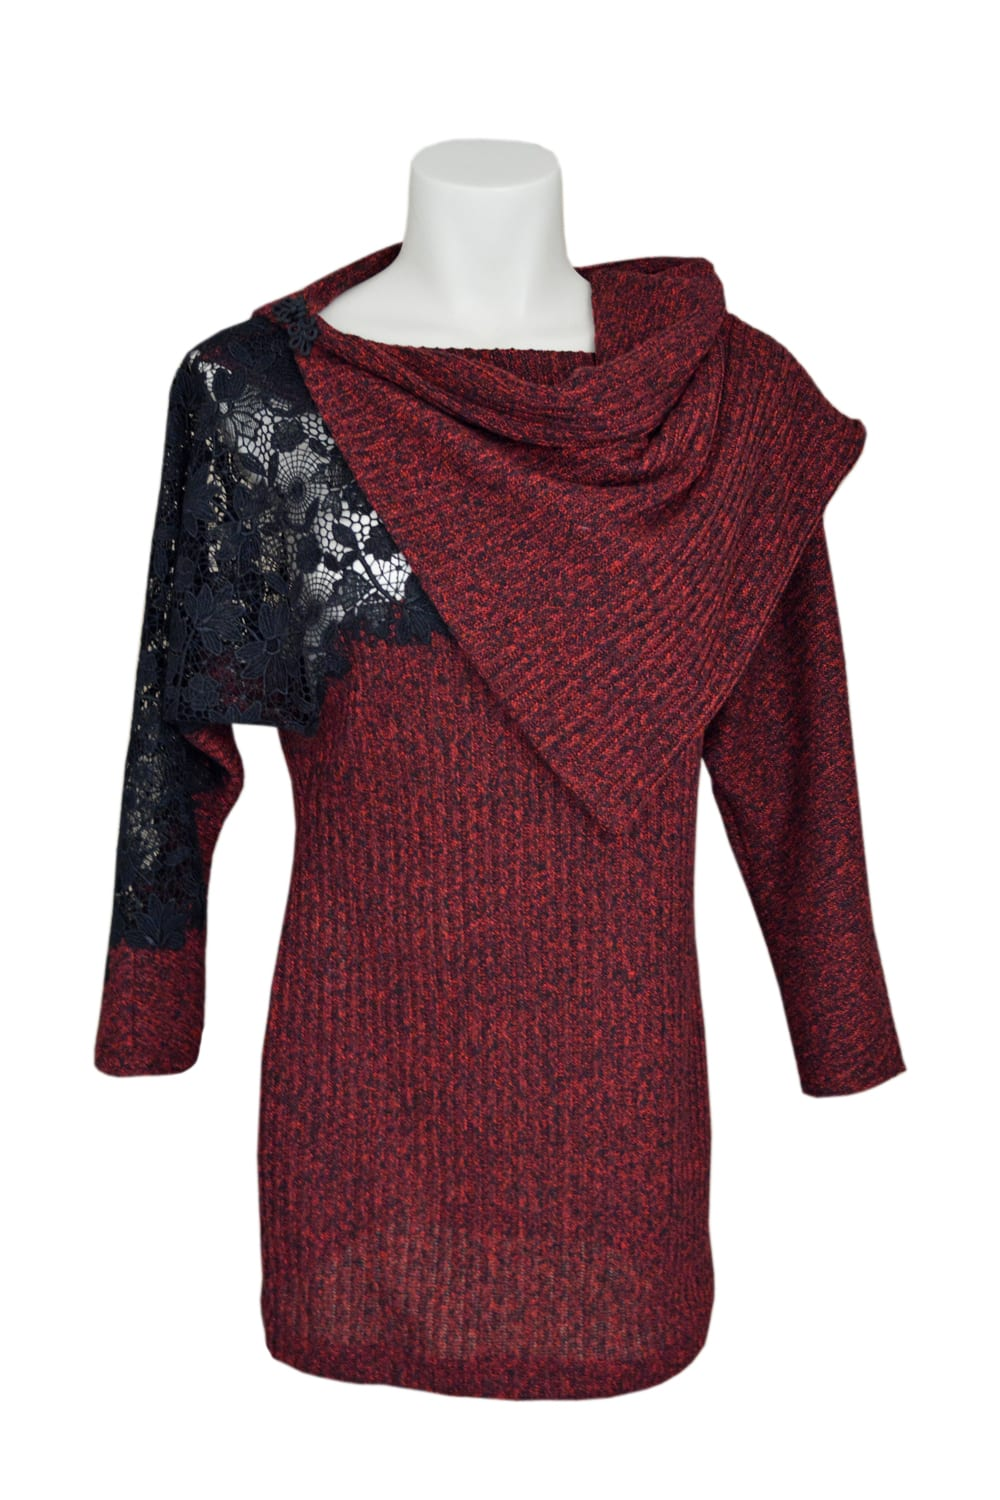 Red tunic, long sleeves and asymmetrical collar. Inlay of lace on sleeve and left shoulder.